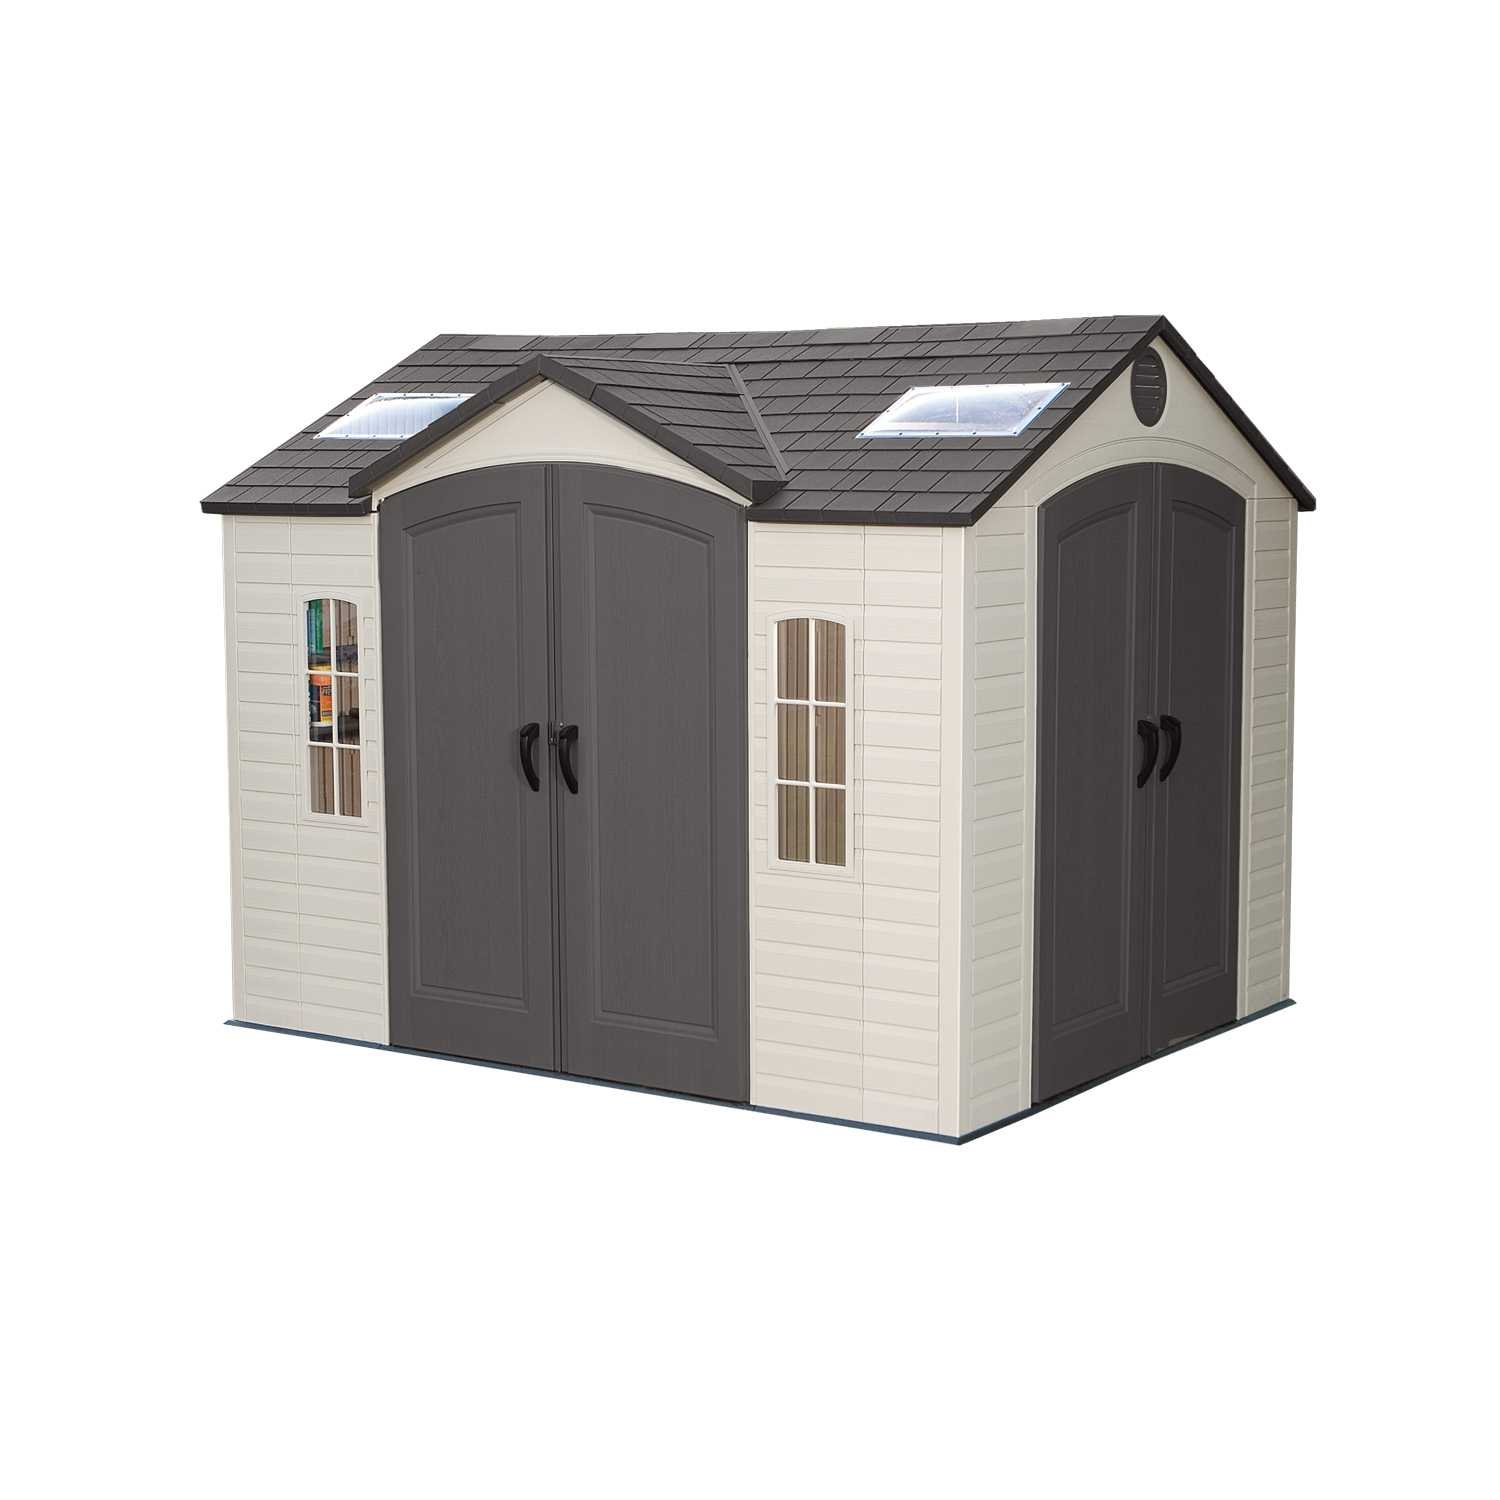 amazoncom lifetime 60001 outdoor storage shed 10 by 8 feet garden outdoor - Garden Sheds 7x7